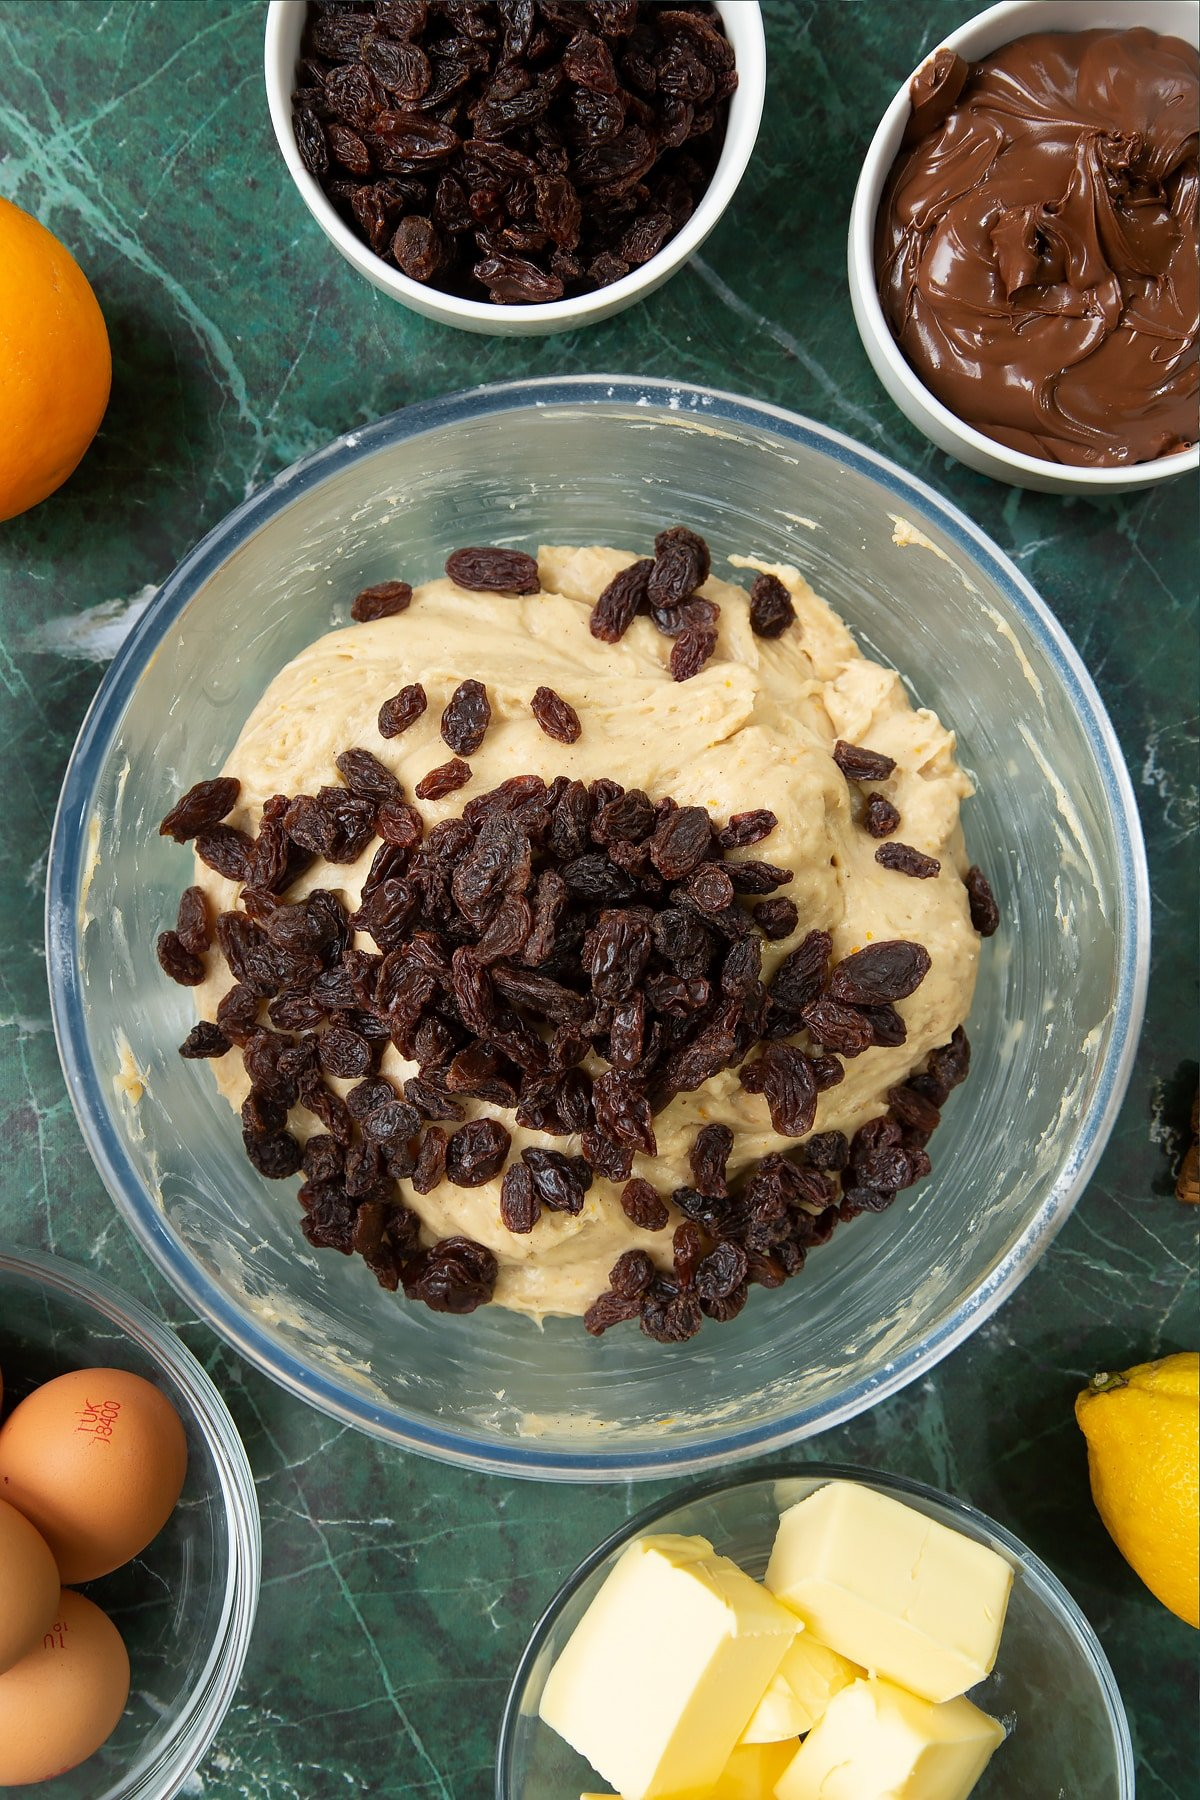 Spiced bread dough in a bowl with raisins on top. Ingredients to make Nutella panettone surround the bowl.